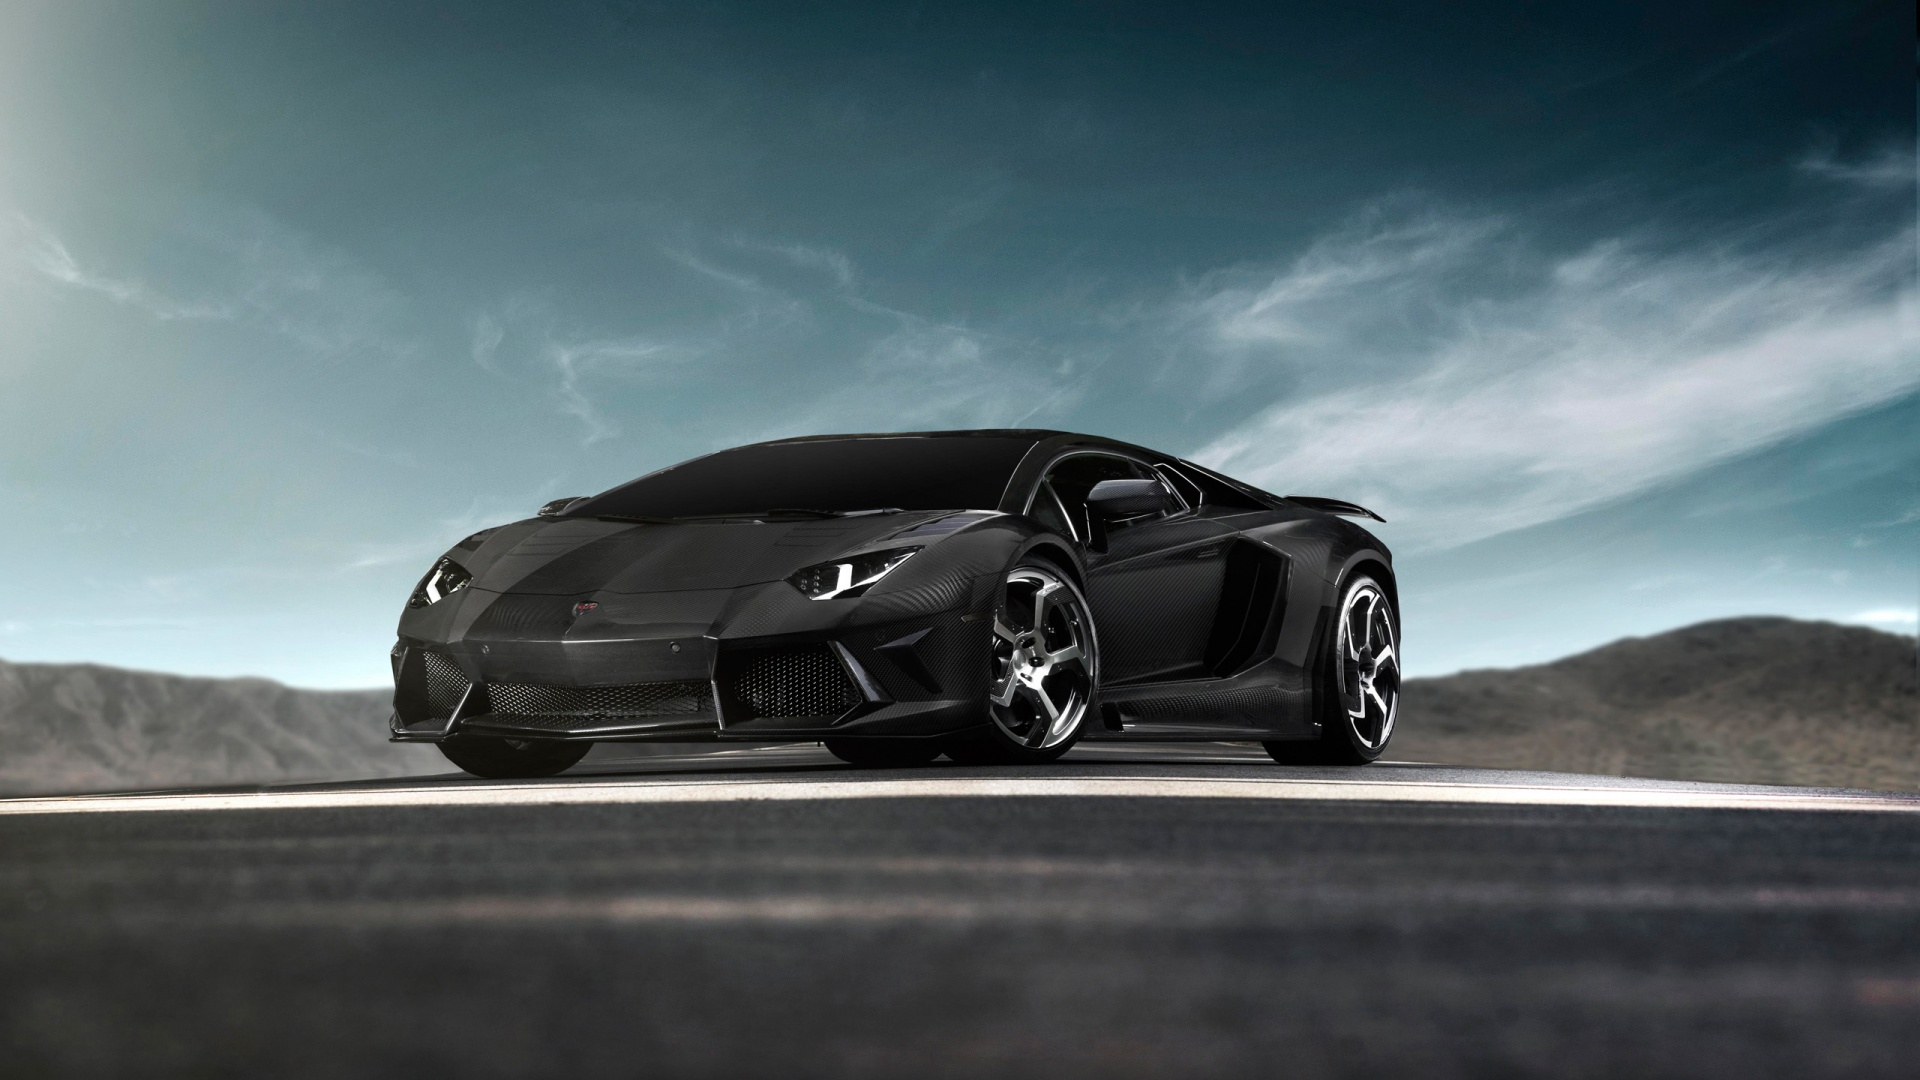 Exotic Lamborghini Car Wallpaper: 25+ Exotic & Awesome Car Wallpapers [HD Edition]